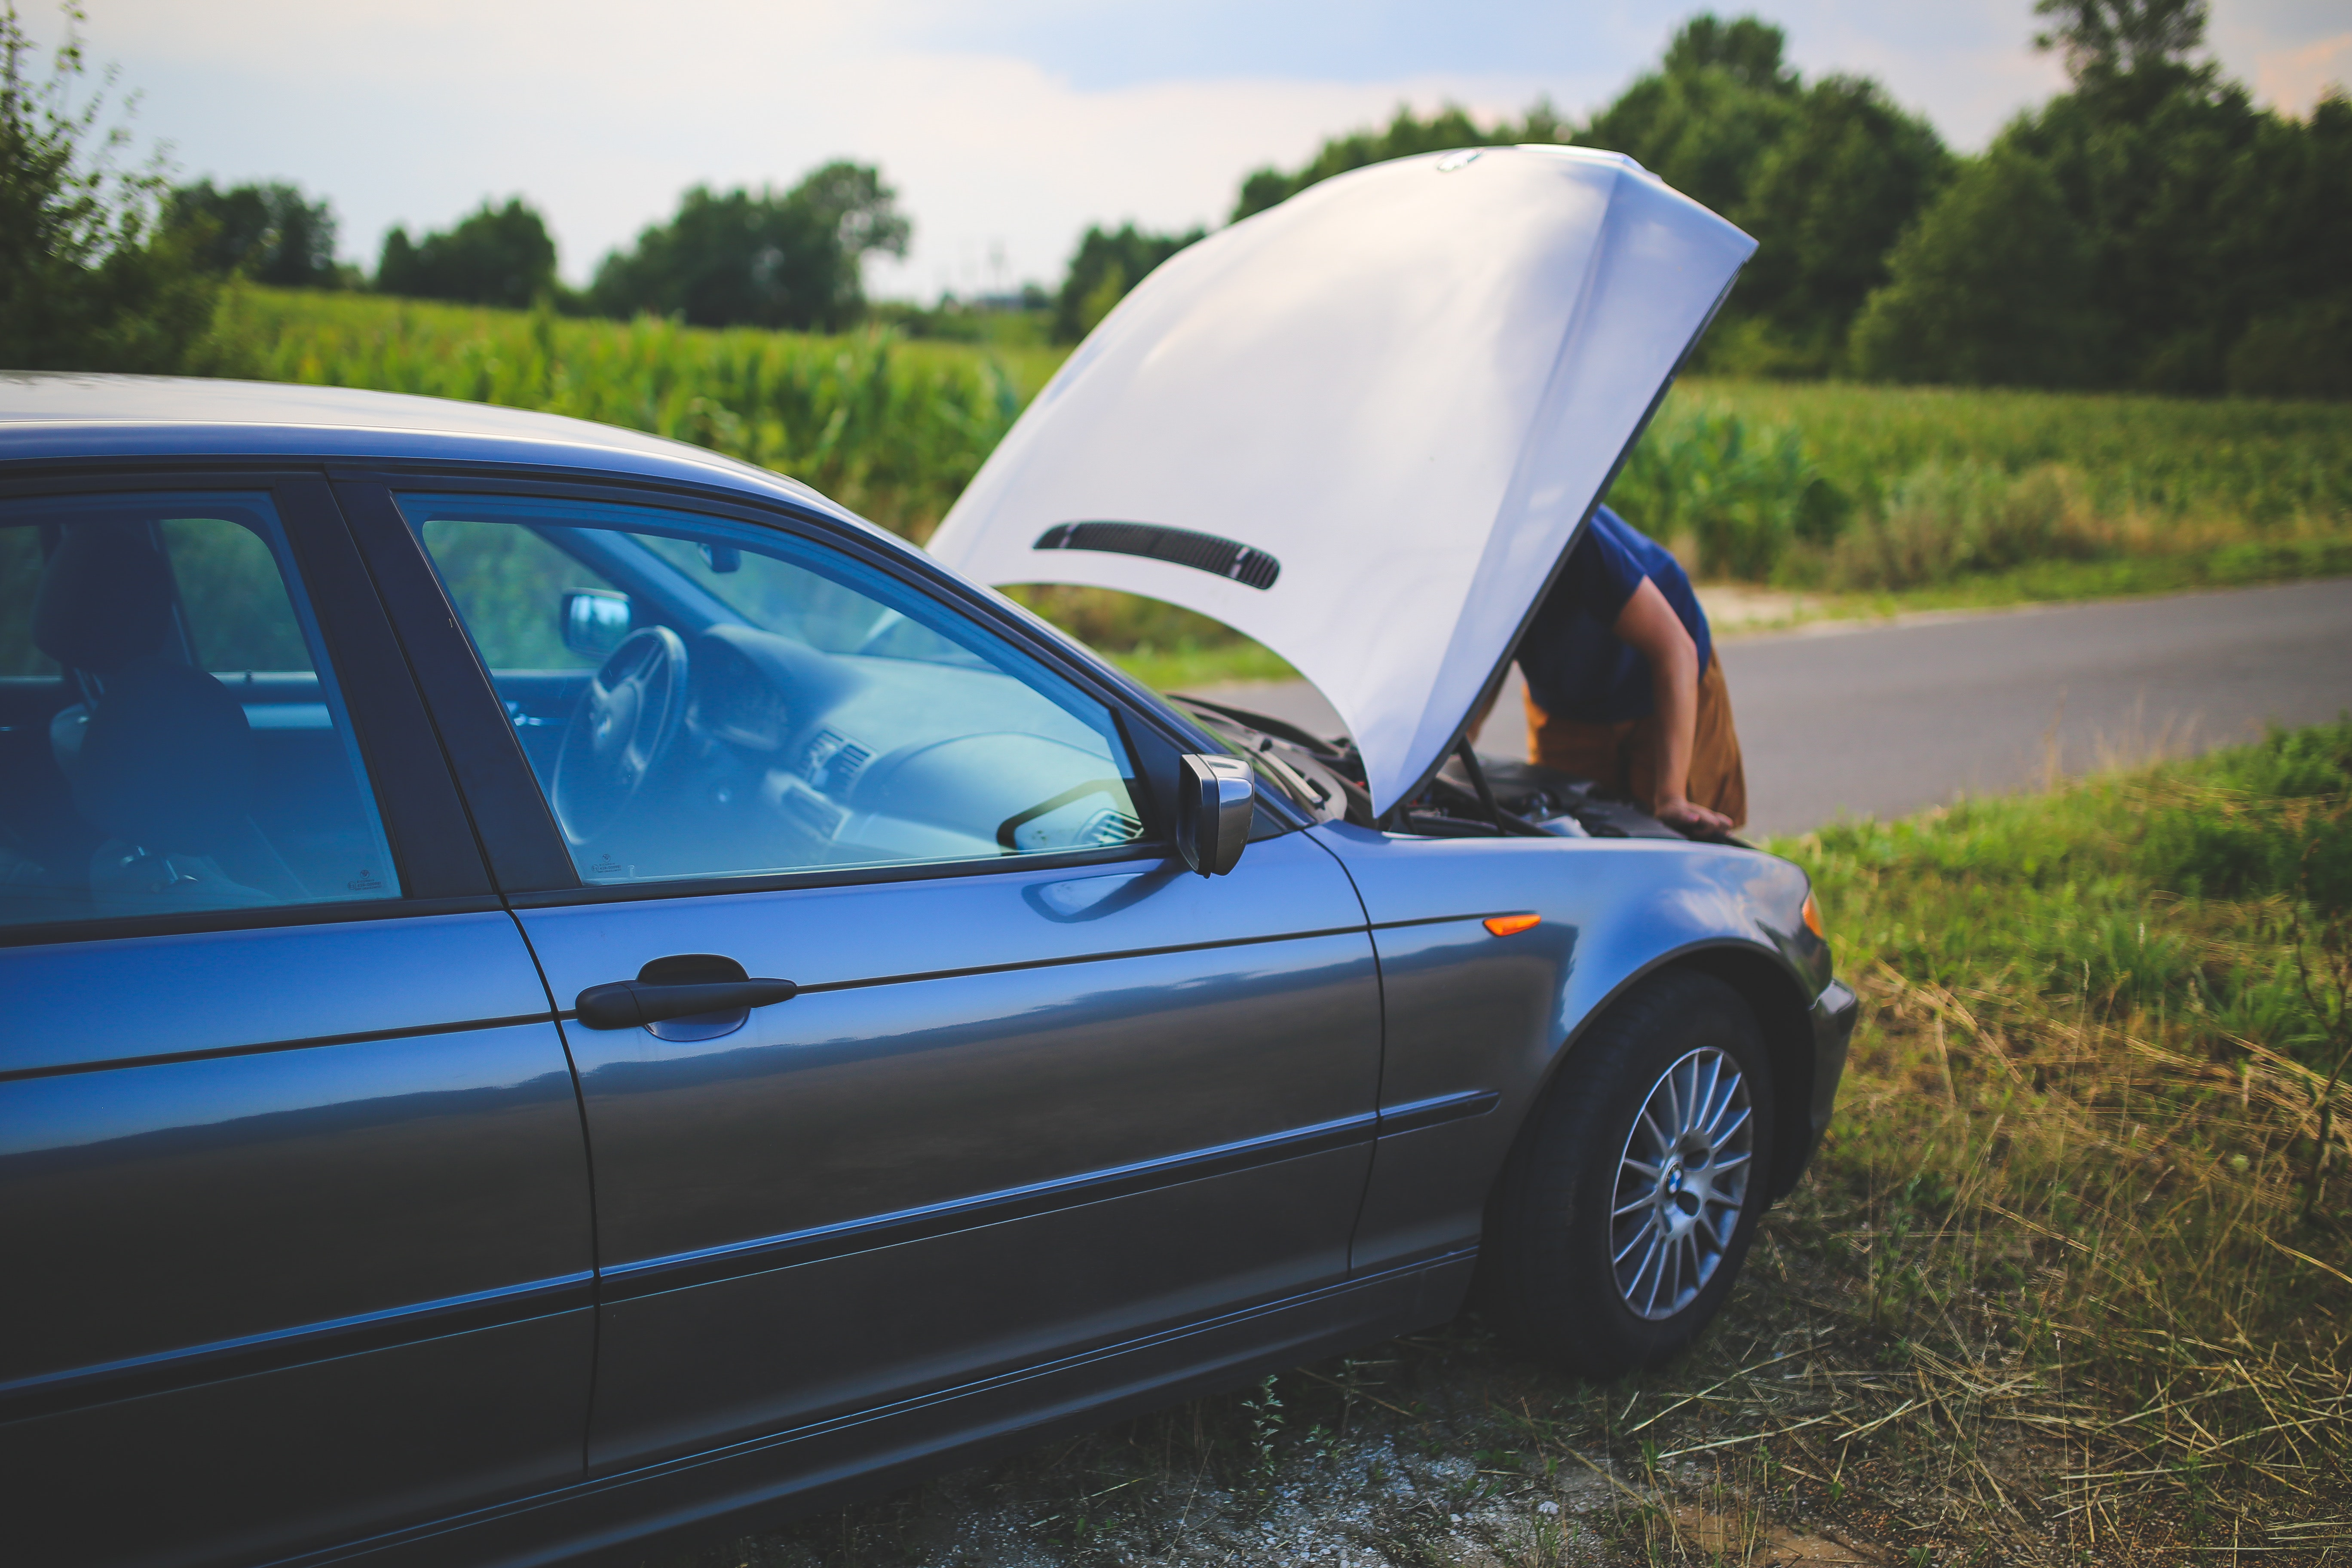 The Importance of Having Insurance Coverage